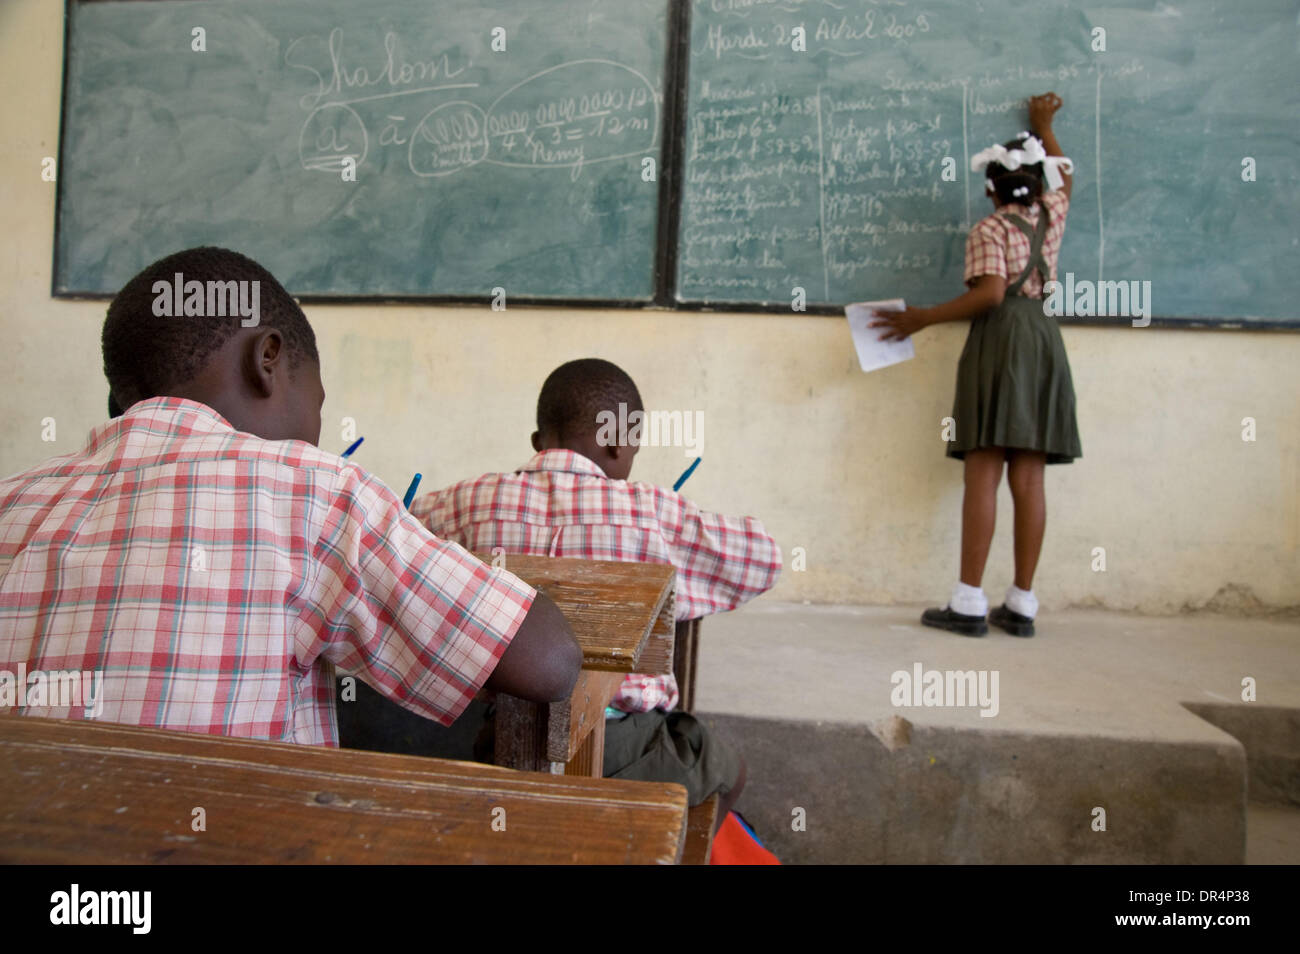 Apr 21, 2009 - Gonaives, Haiti - School children sit in on classes at a school rehabilitated by an international Stock Photo